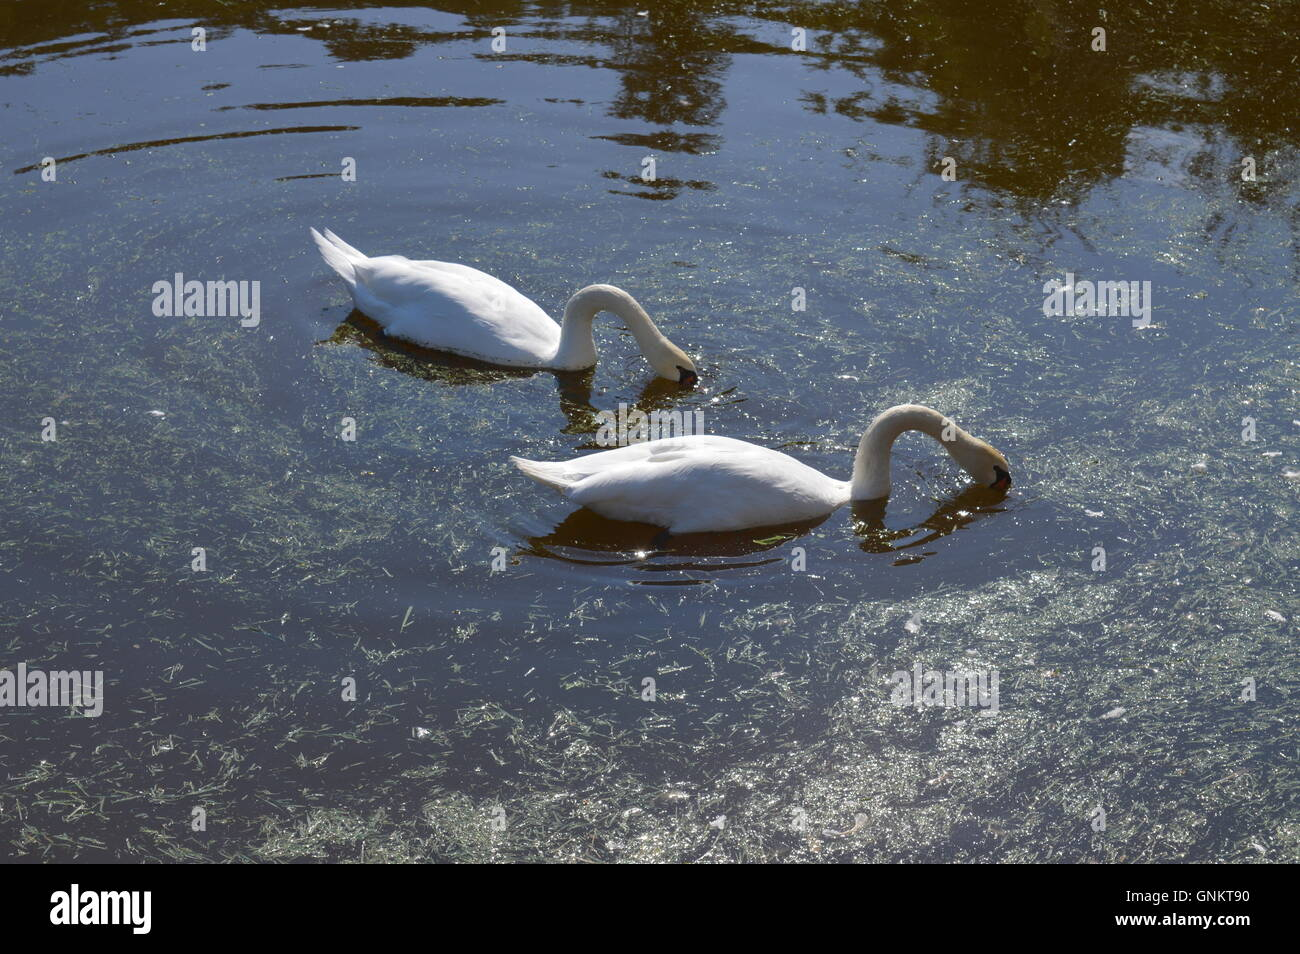 Two swans on a lake Stock Photo